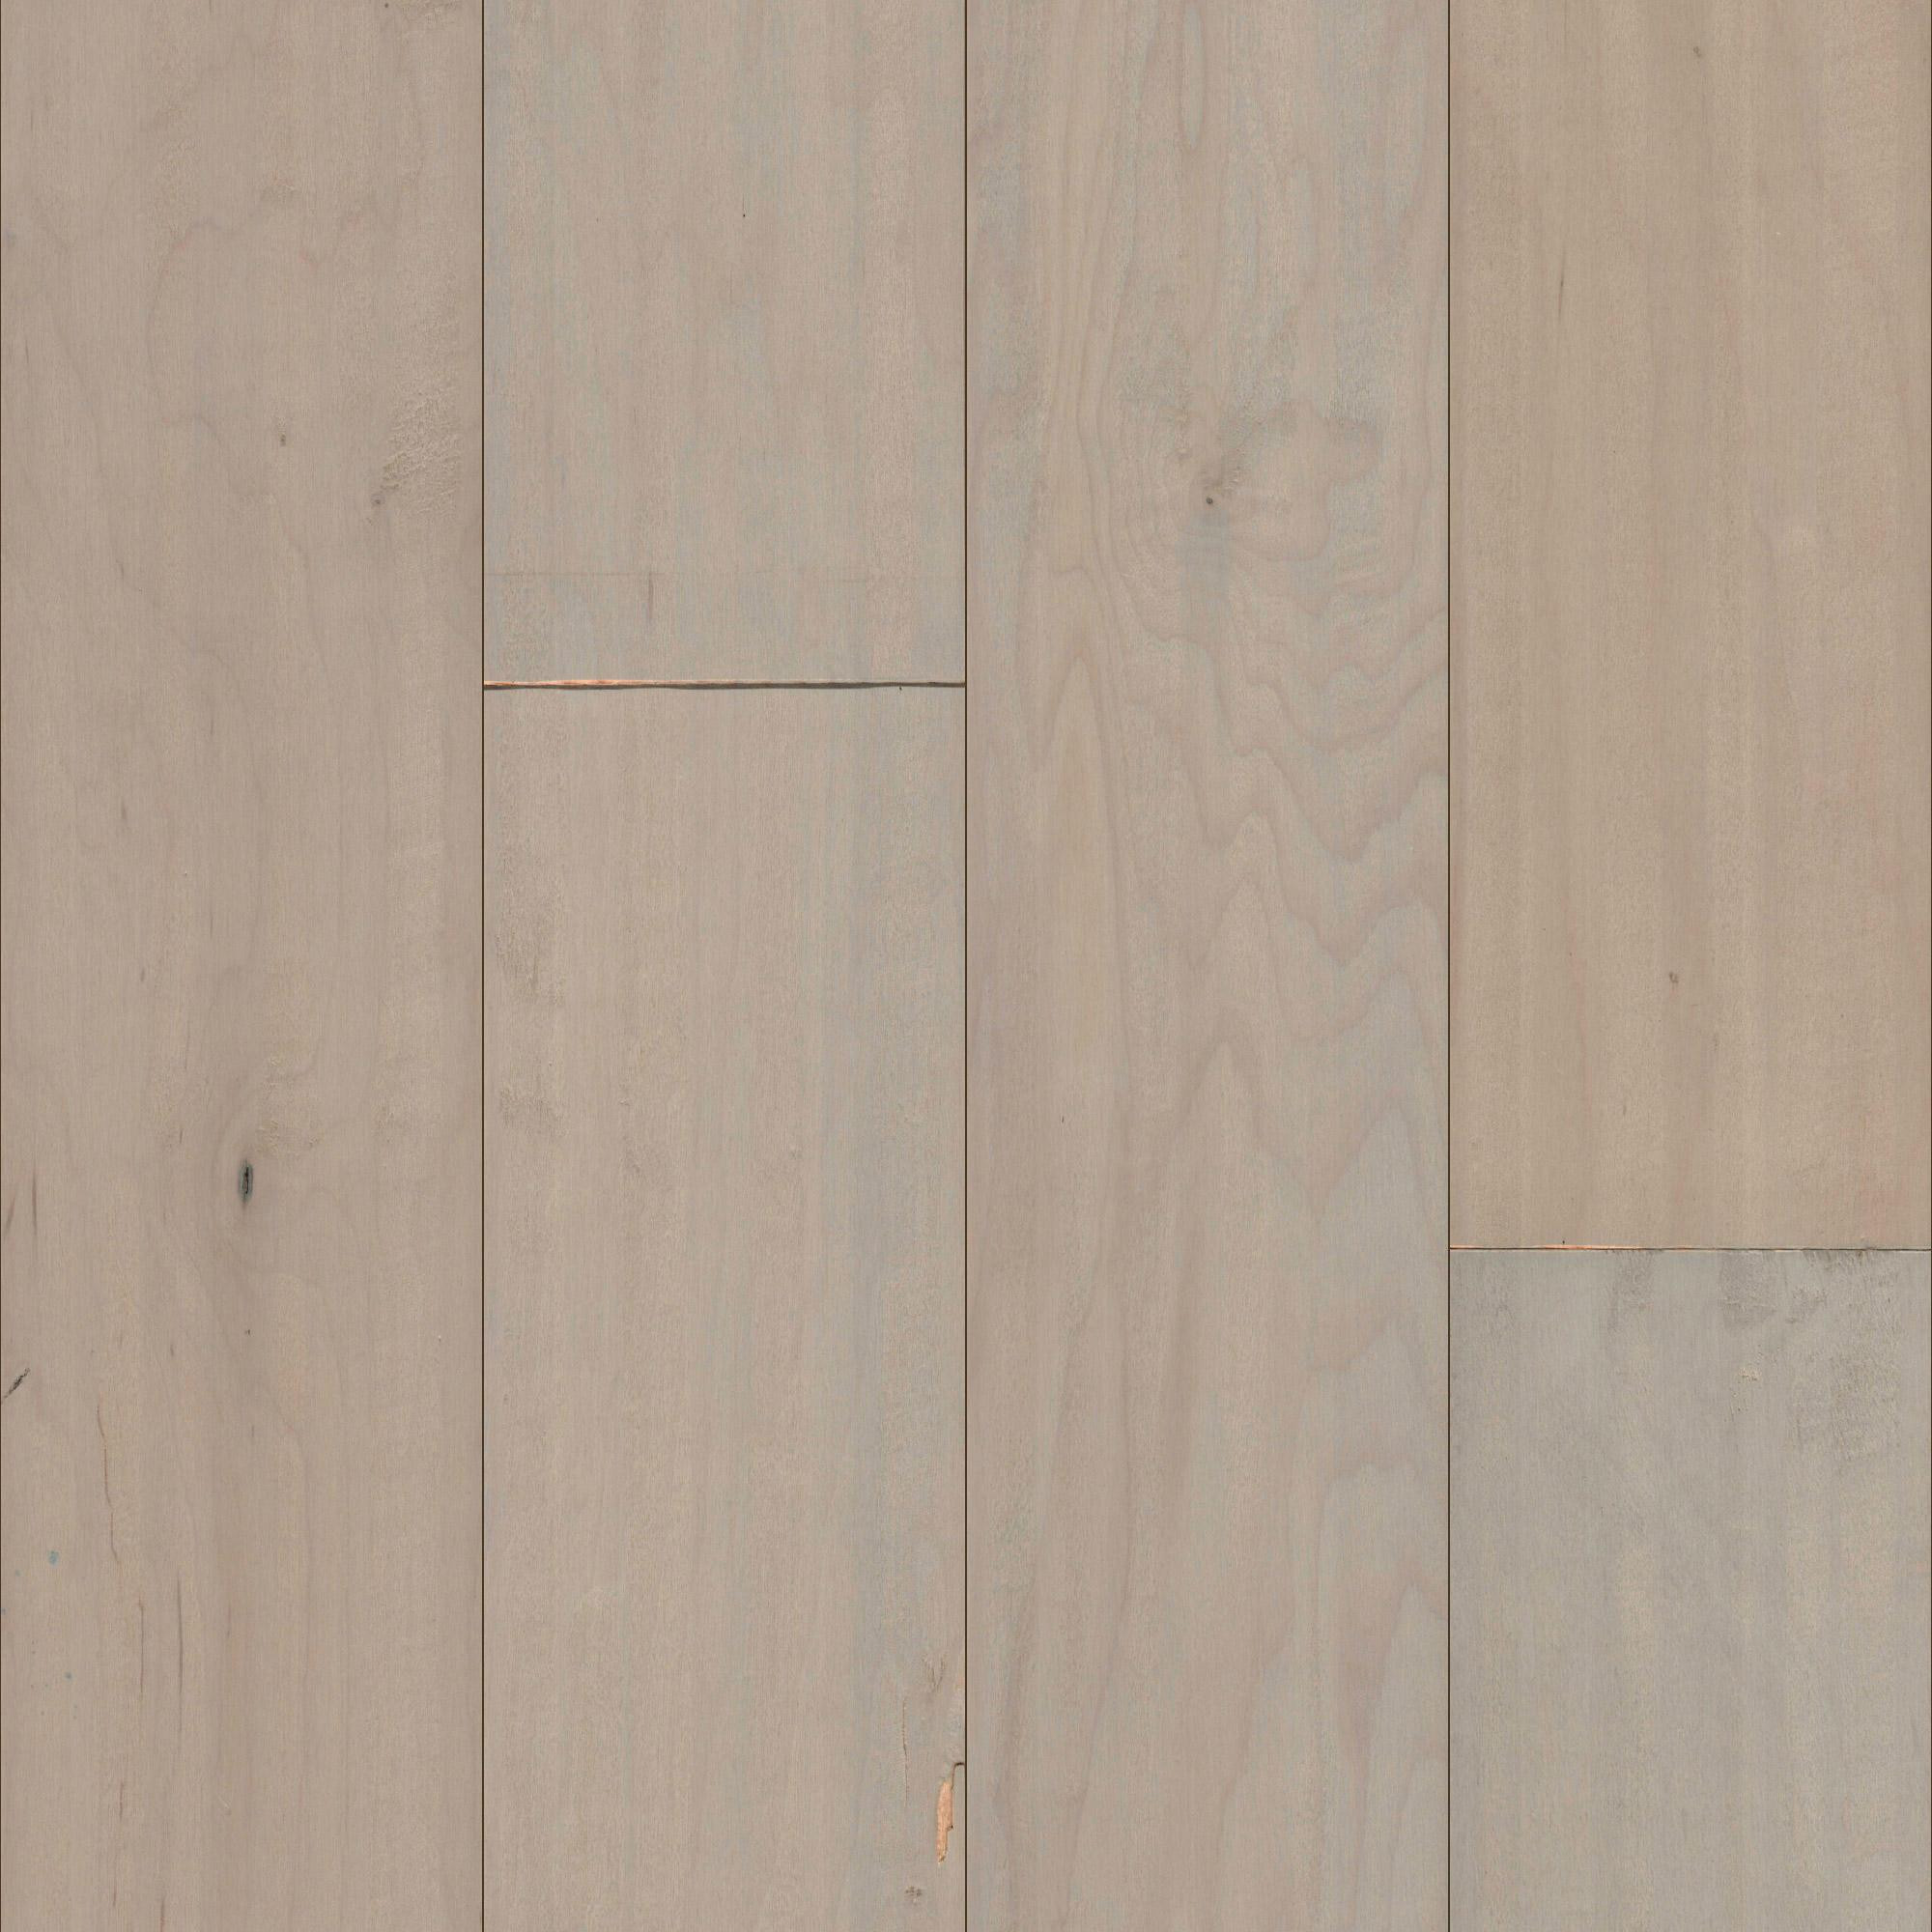 wide plank maple hardwood flooring of mullican lincolnshire sculpted maple frost 5 engineered hardwood intended for mullican lincolnshire sculpted maple frost 5 engineered hardwood flooring